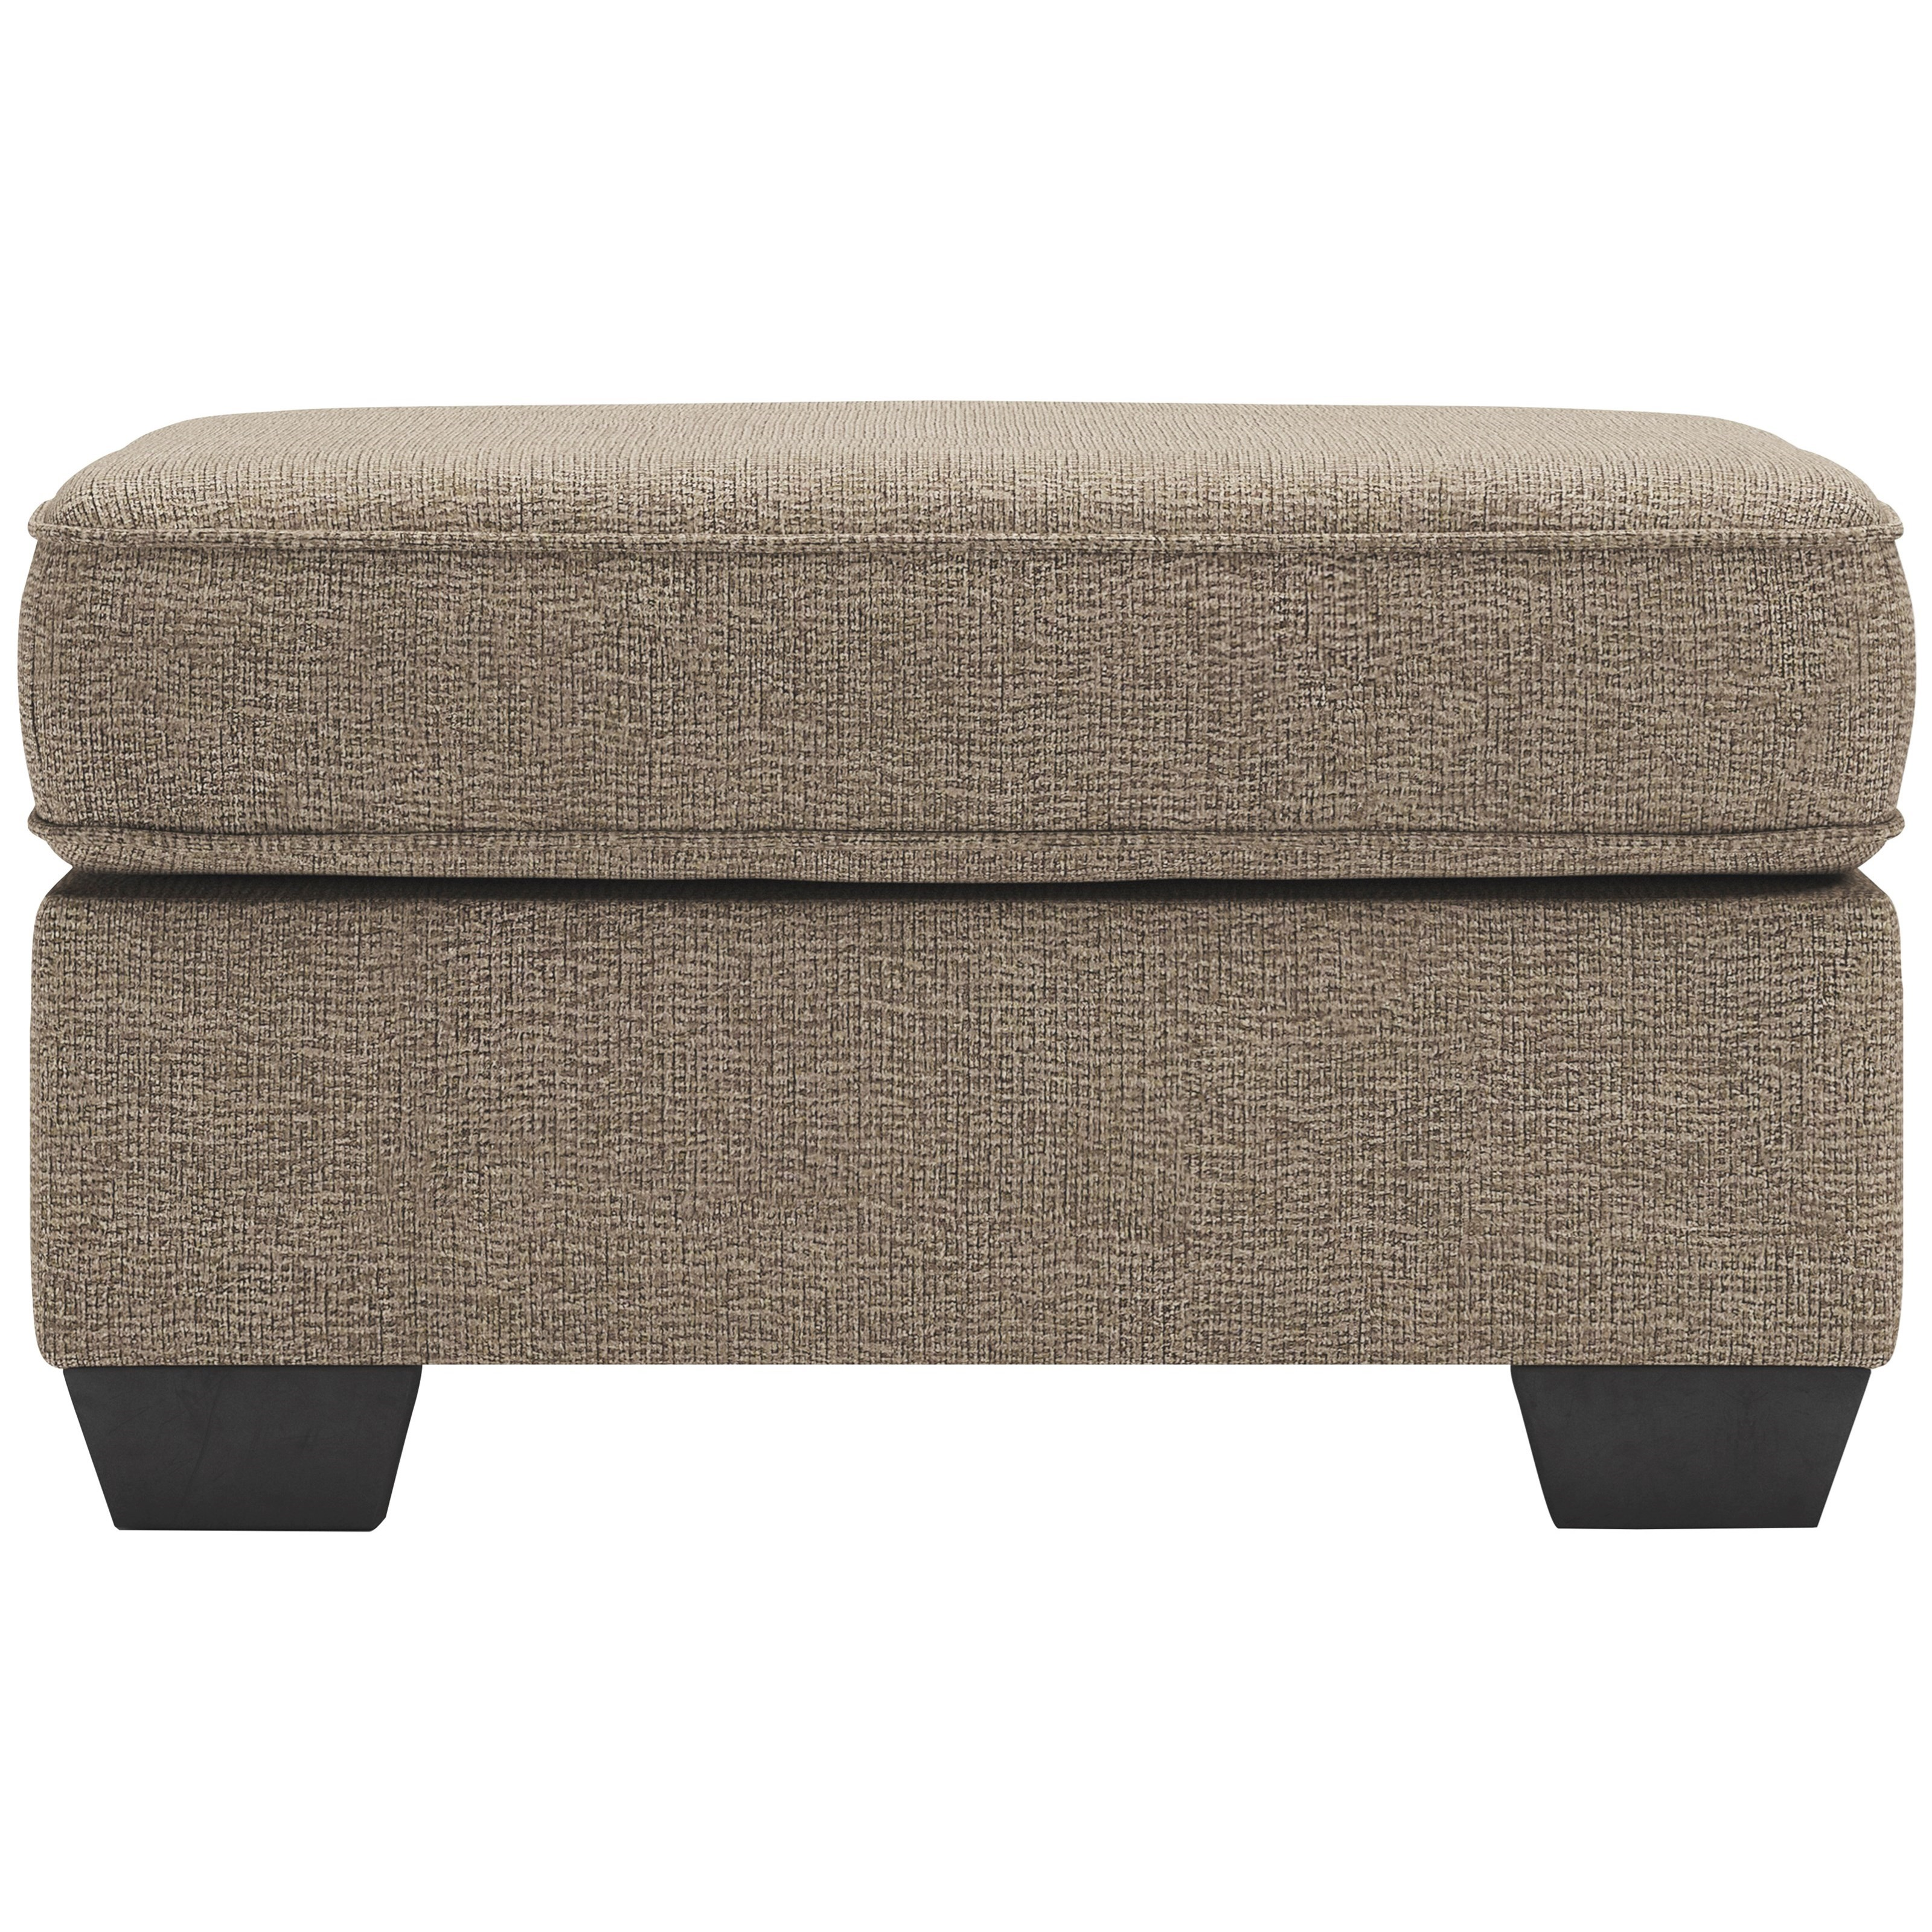 Greaves Ottoman by Ashley (Signature Design) at Johnny Janosik